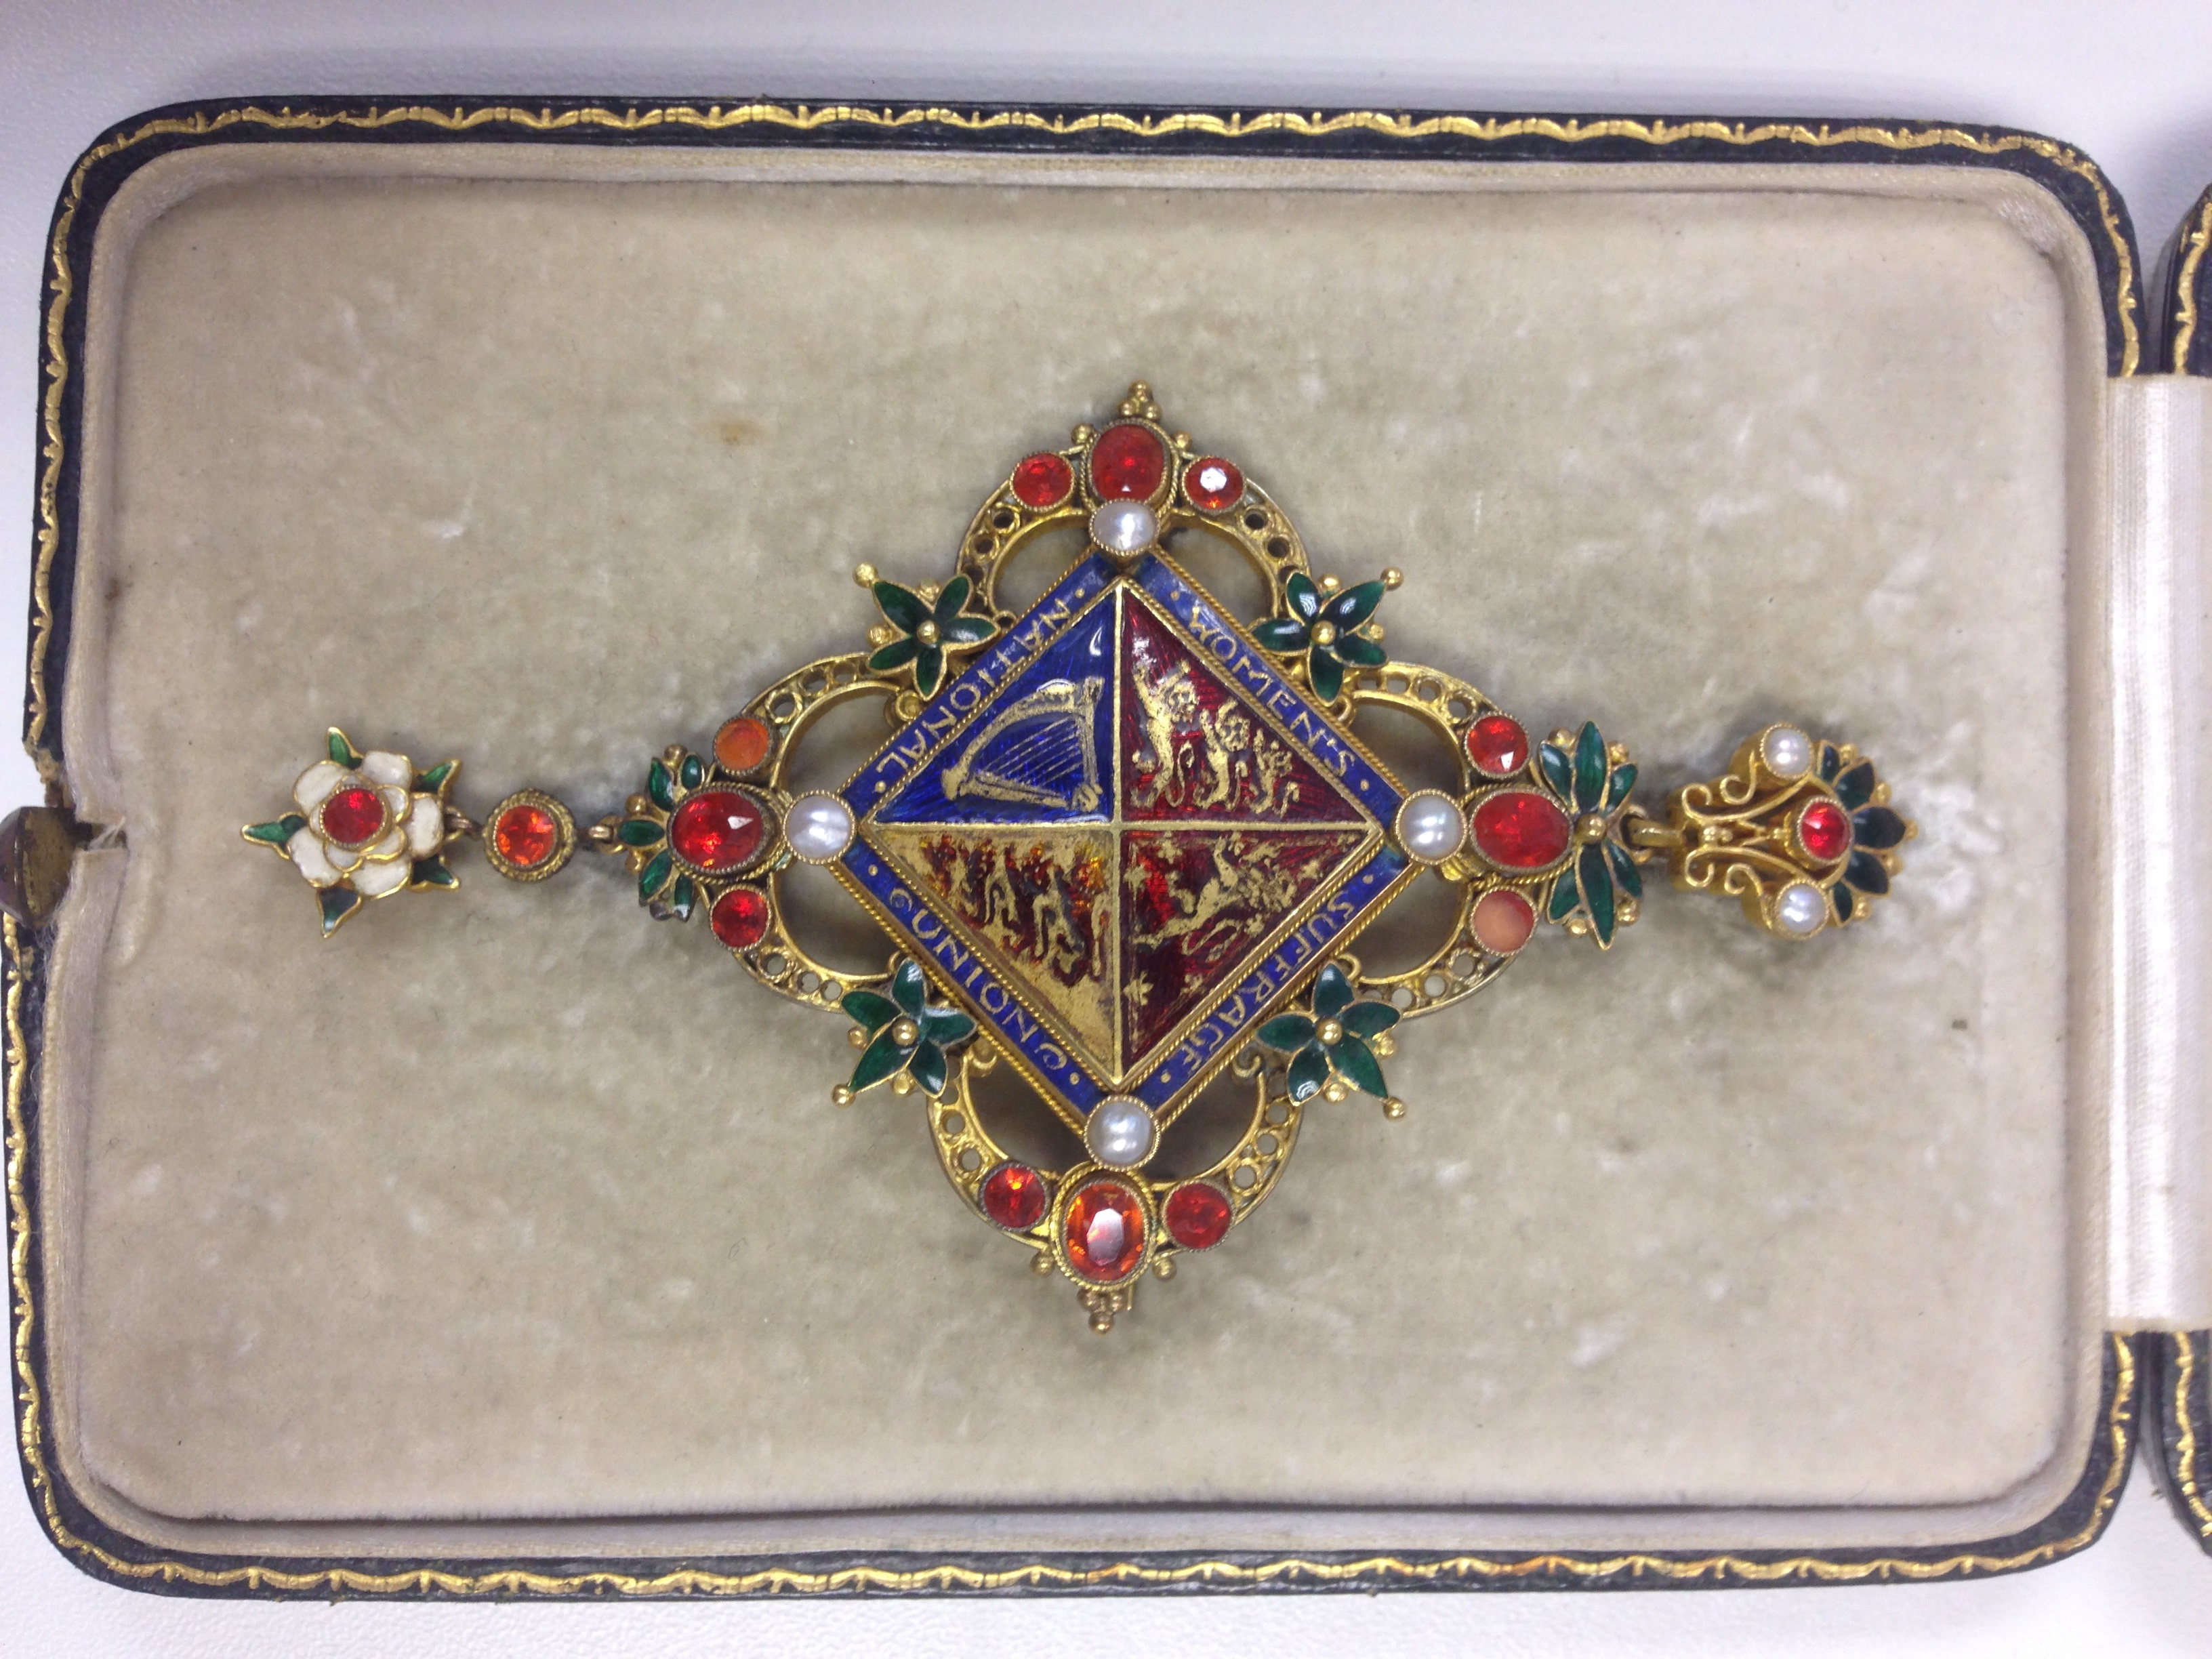 Brooch presented by the NUWSS to Millicent Fawcett in 1913 (image courtesy of the Fawcett Society)